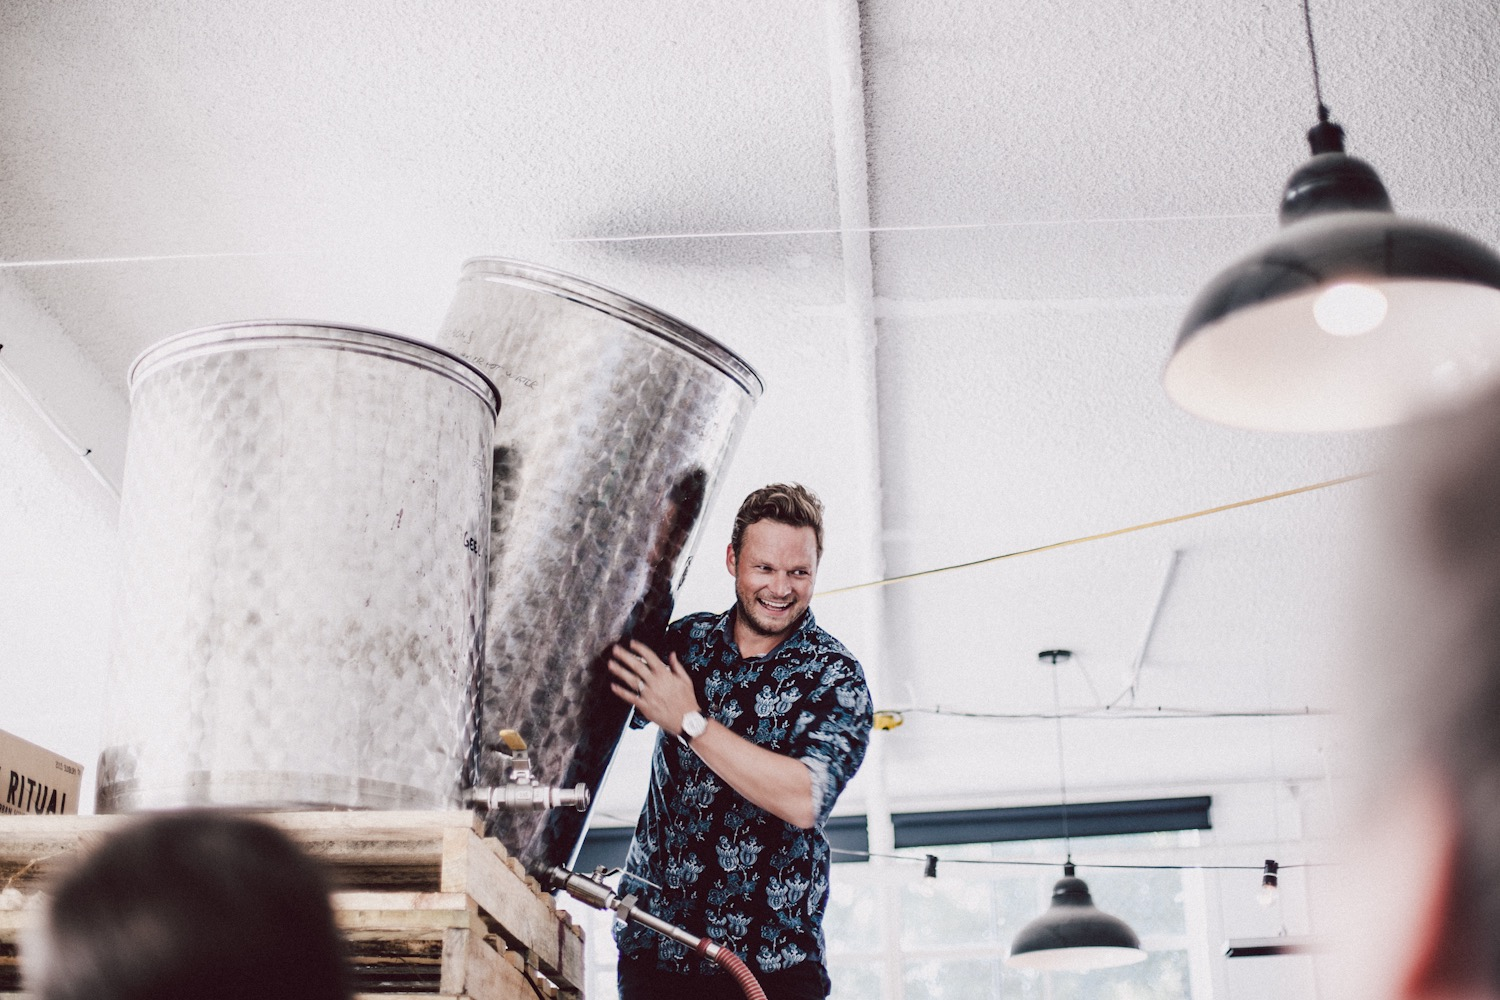 Alex Byrne (The guy who knows how to make wine)